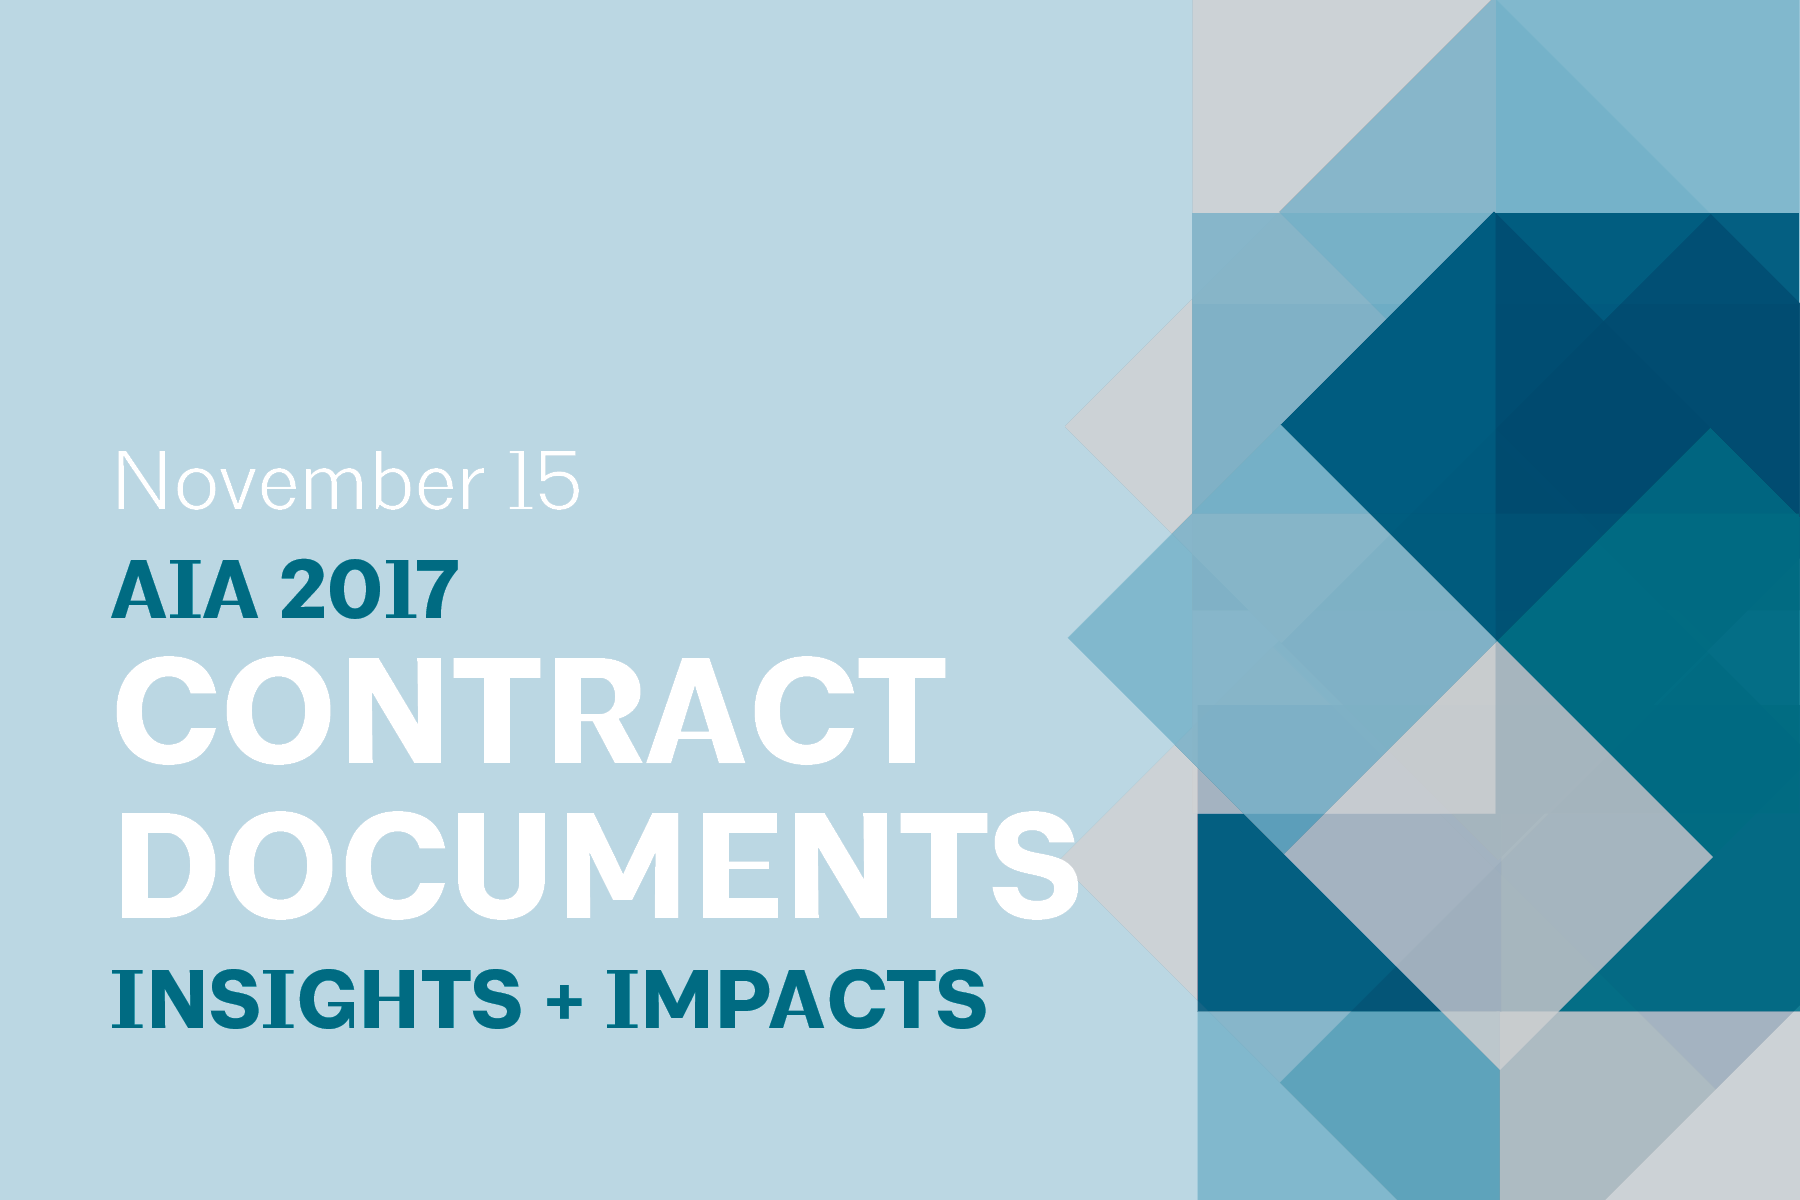 This page is intended only for participants of AIA 2017 Contract Documents: Insights & Impacts.